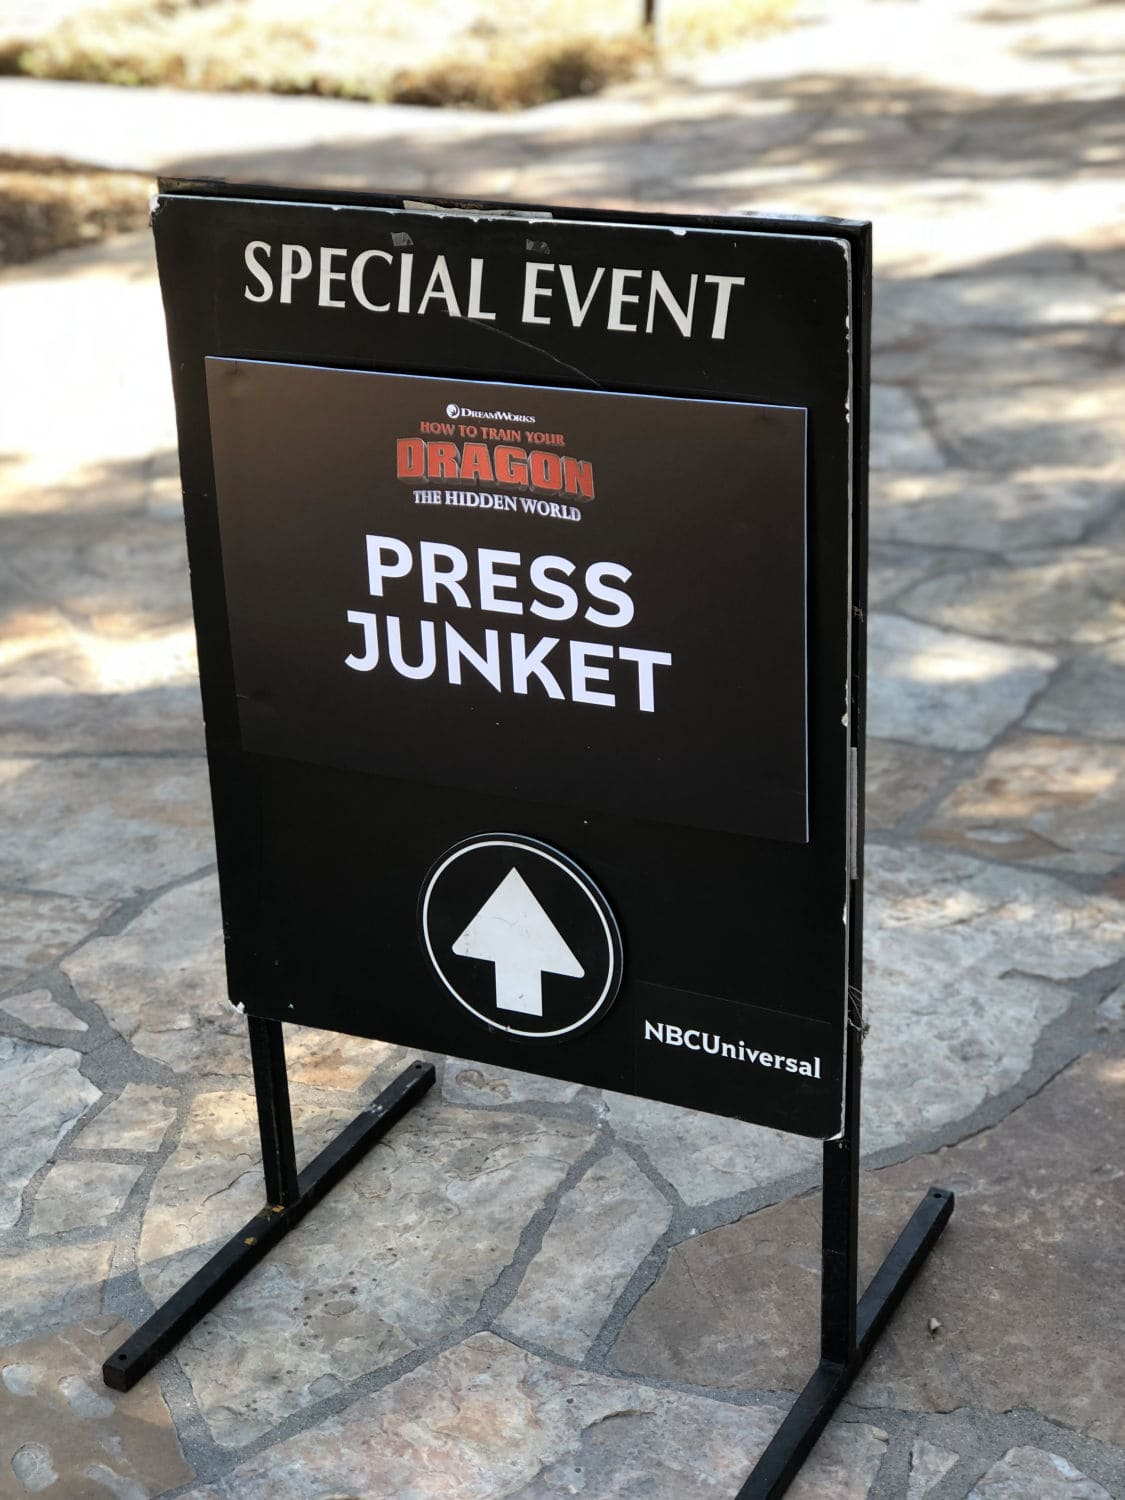 How to Train Your Dragon Press Junket